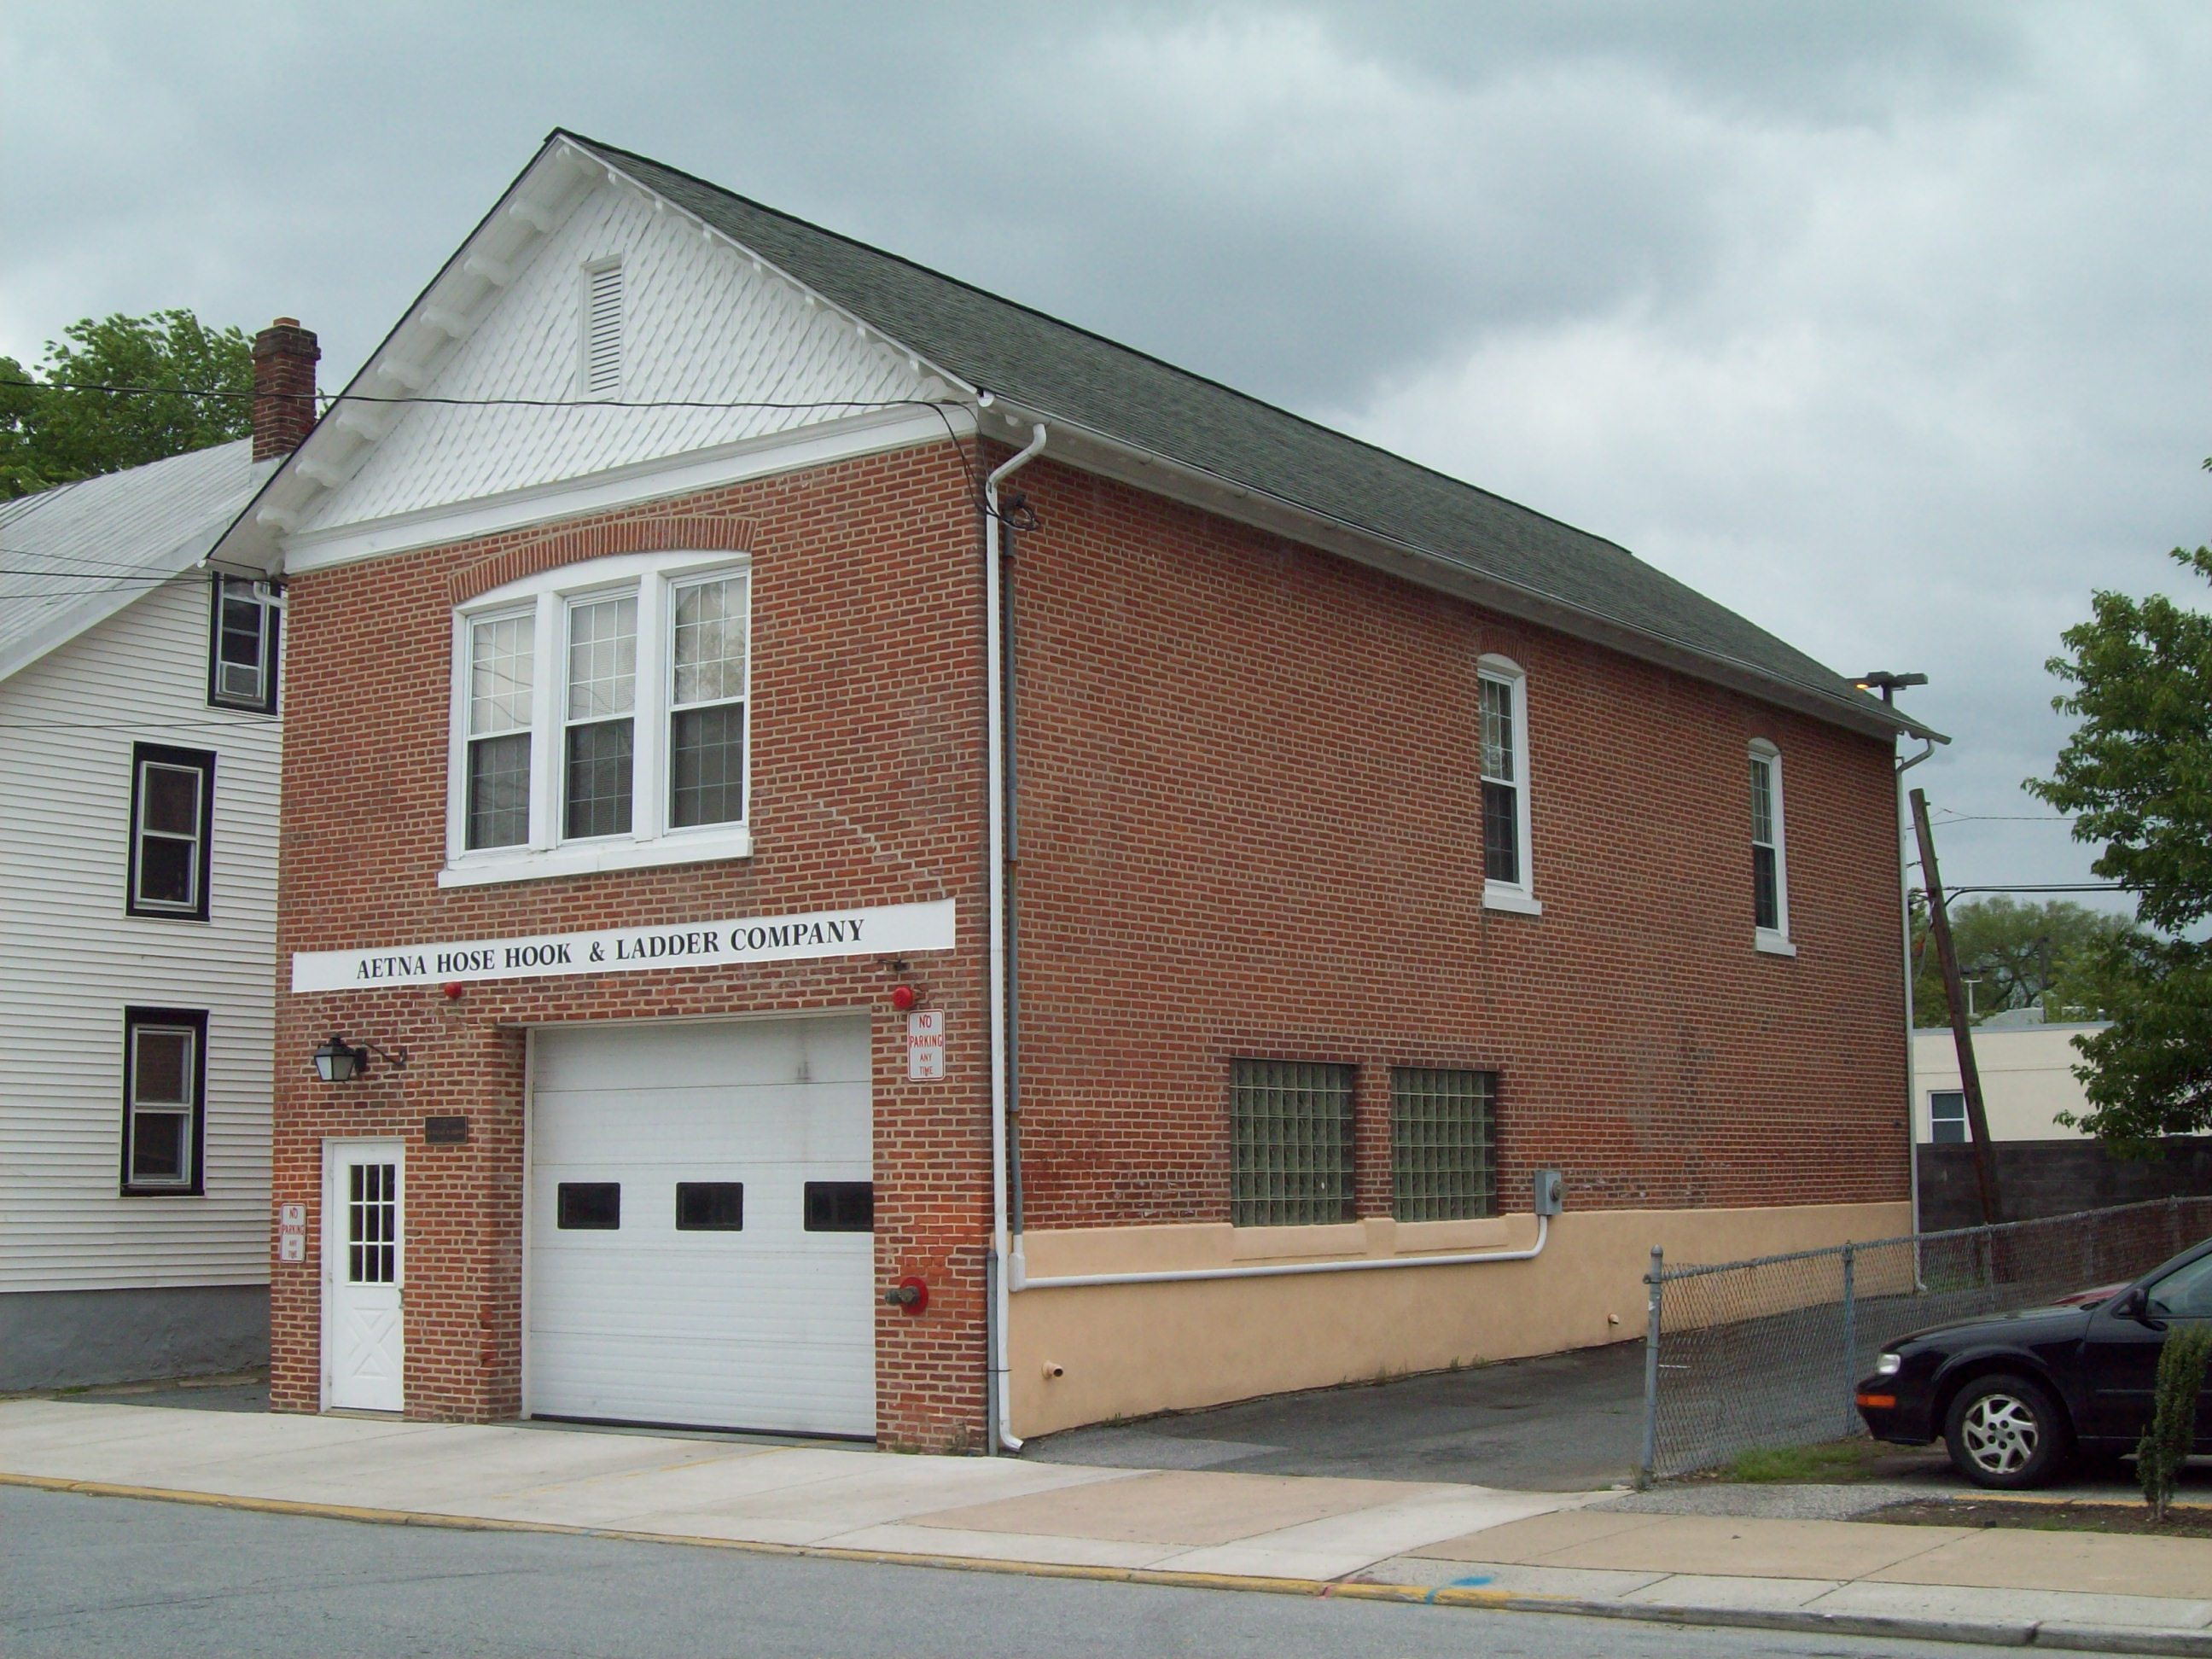 Aetna Hose, Hook and Ladder Company Fire Station No  1